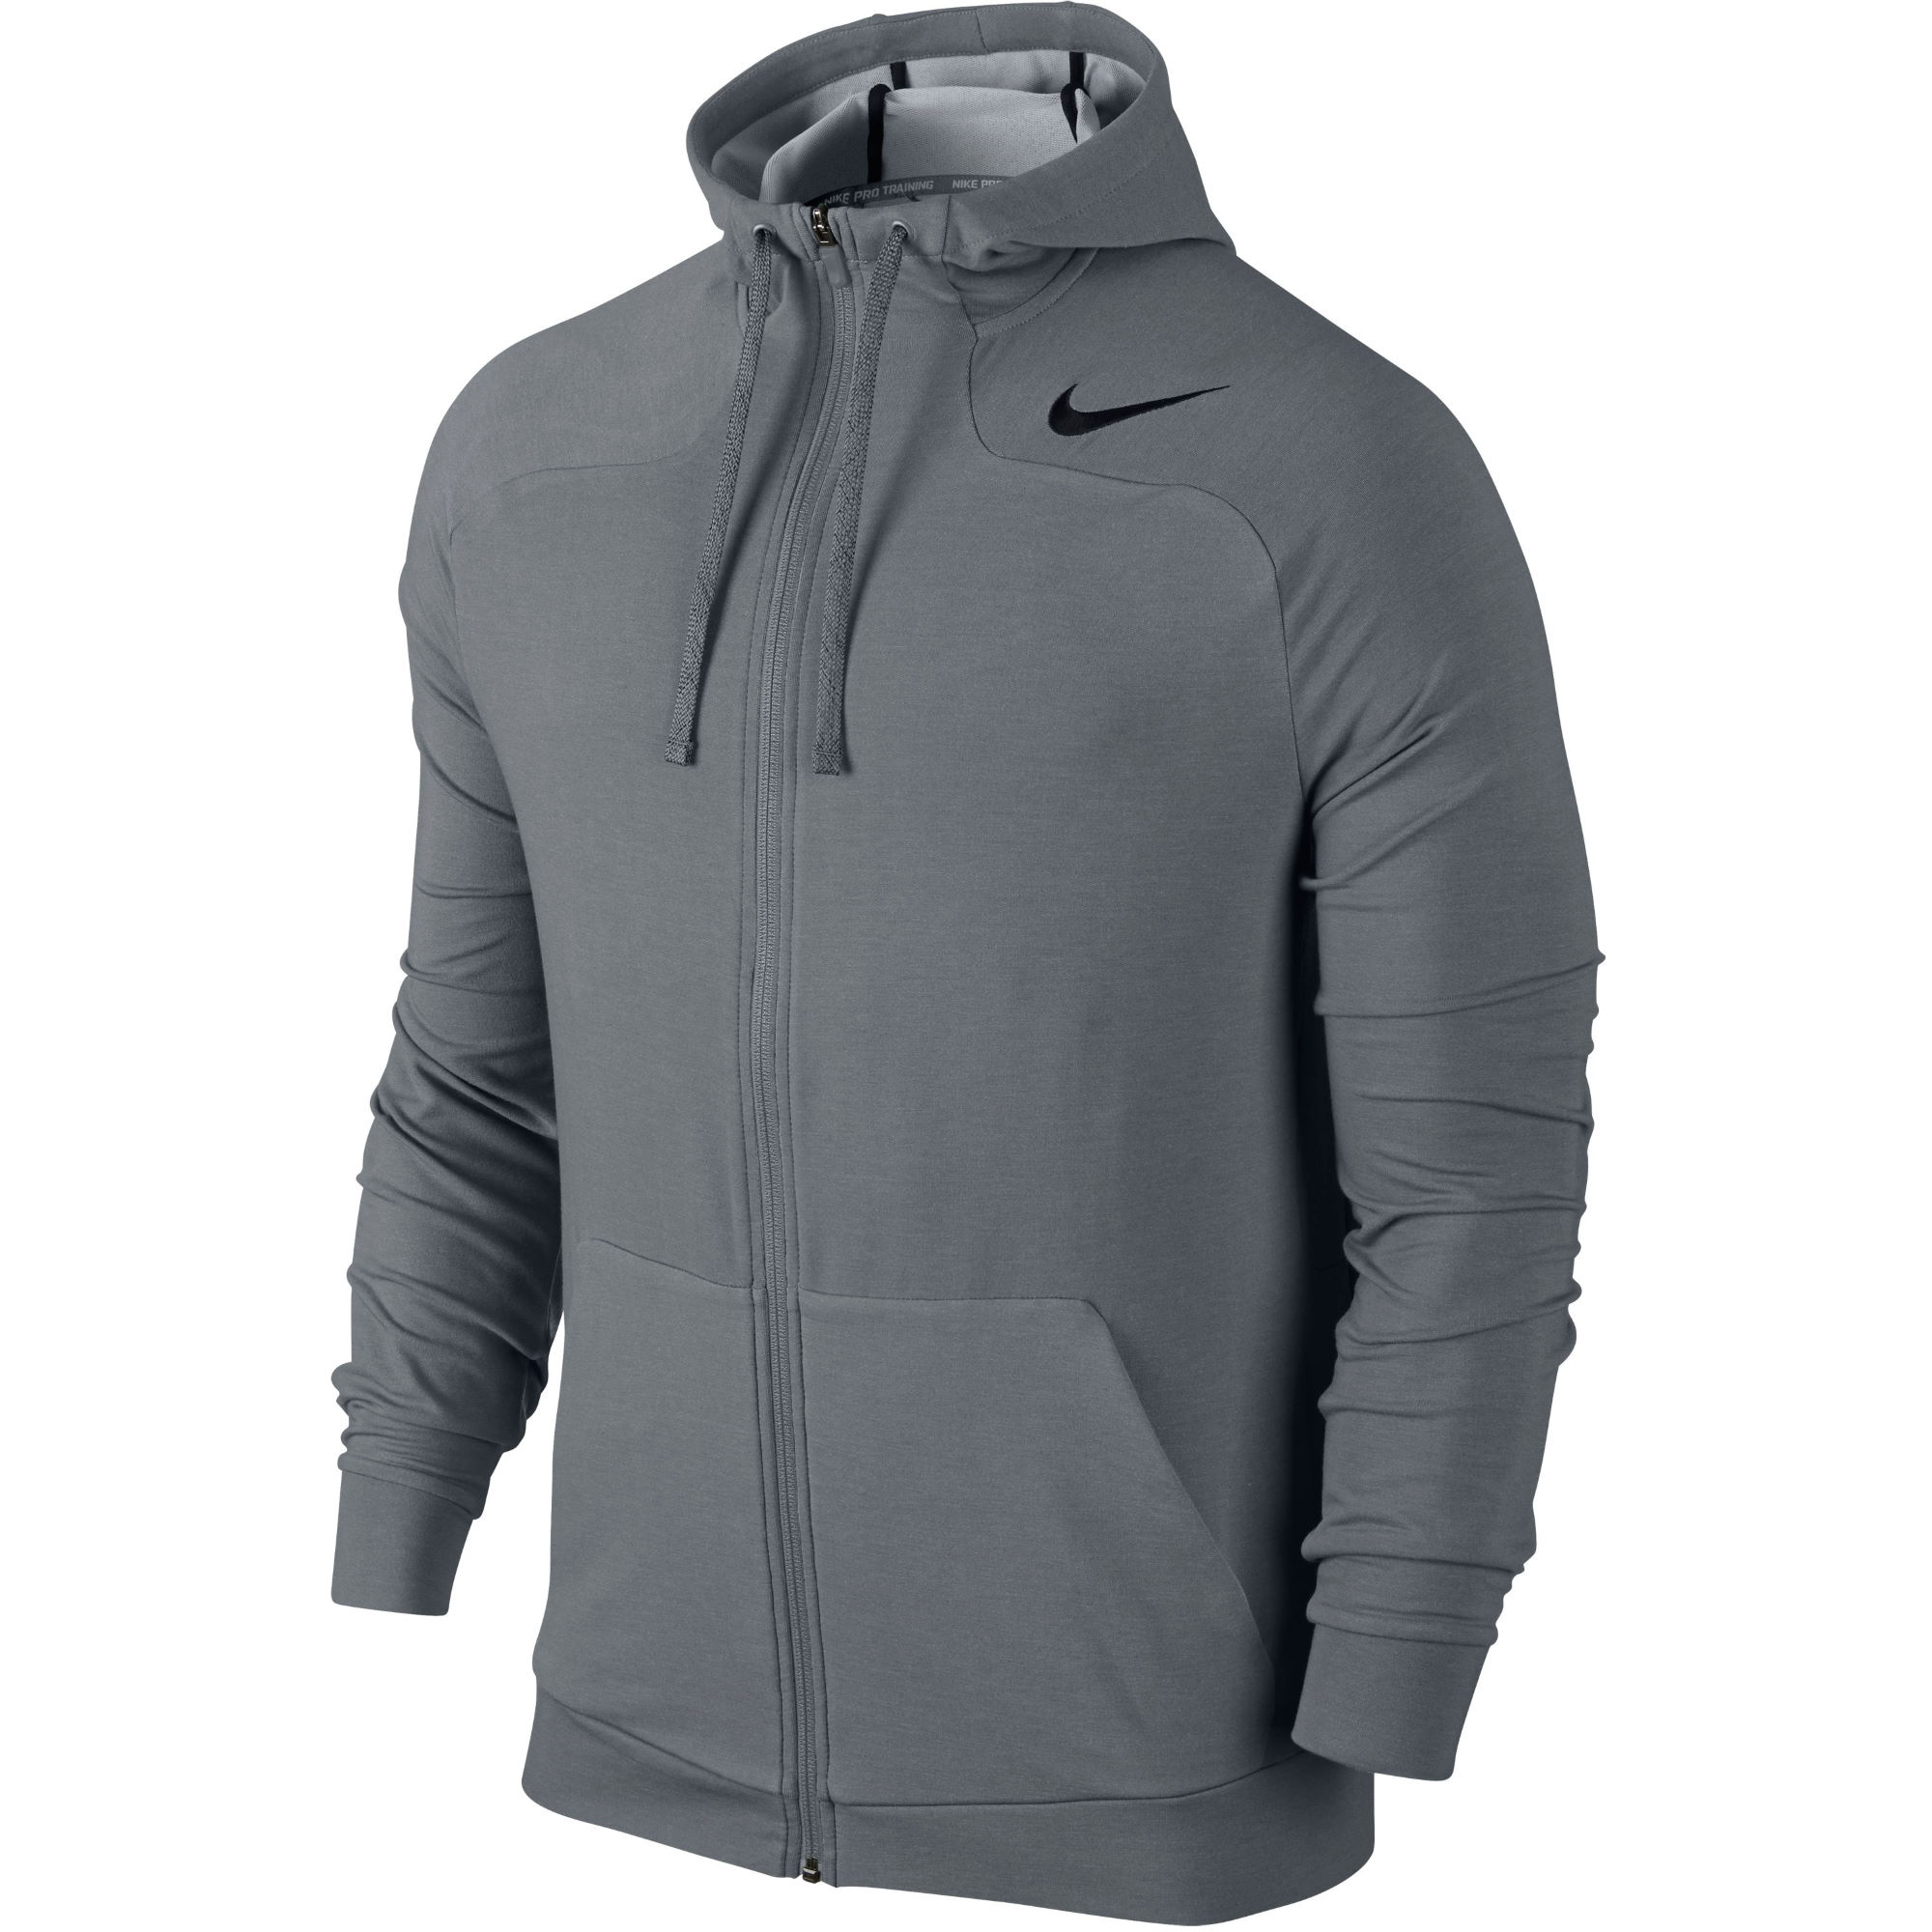 Wiggle nike dri fit touch fleece full zip hoodie sp15 for Under armour dri fit long sleeve shirts